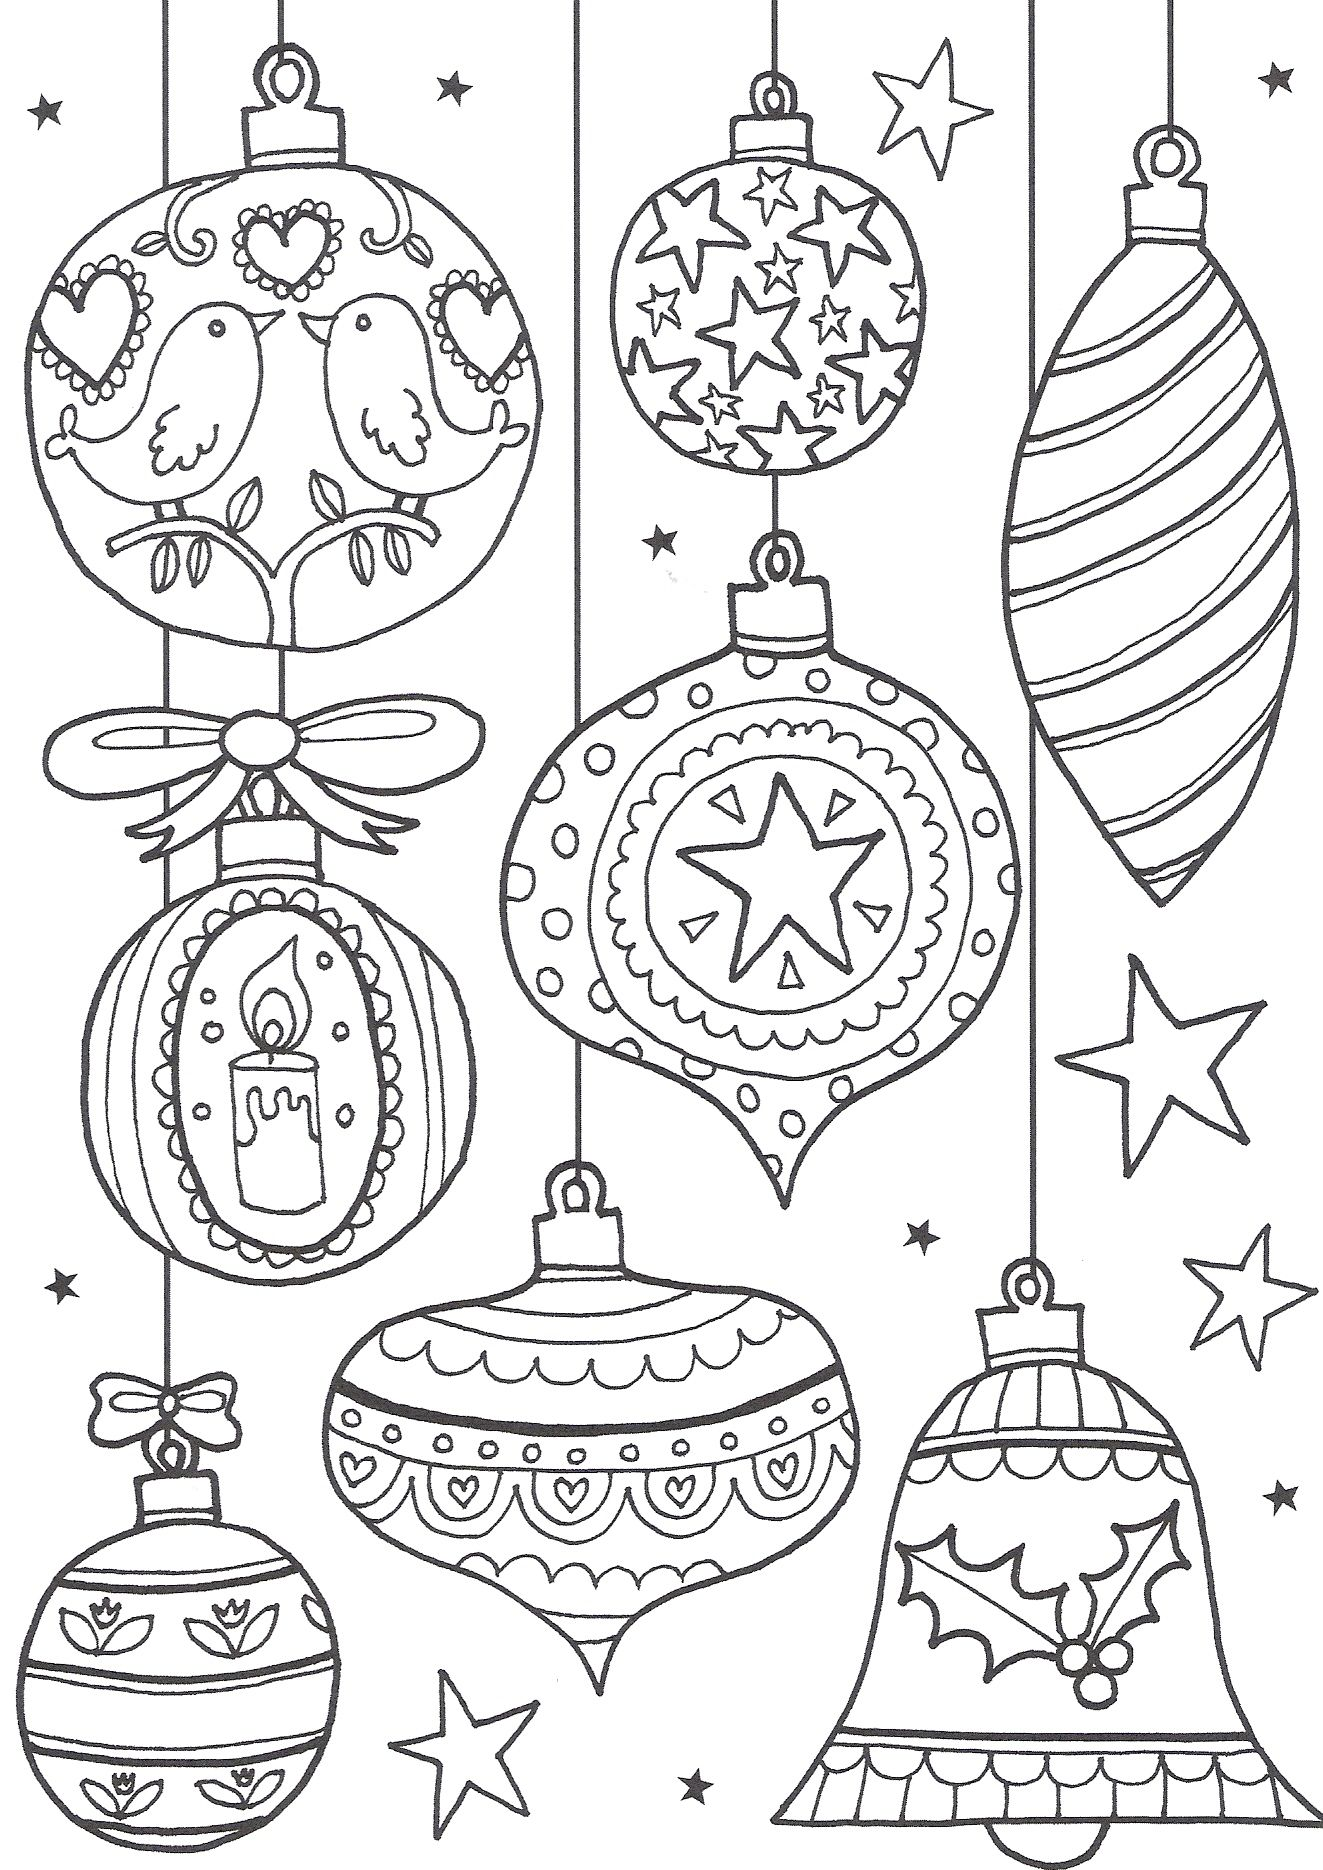 Xmas Coloring Book Pages With Free Christmas Colouring For Adults The Ultimate Roundup